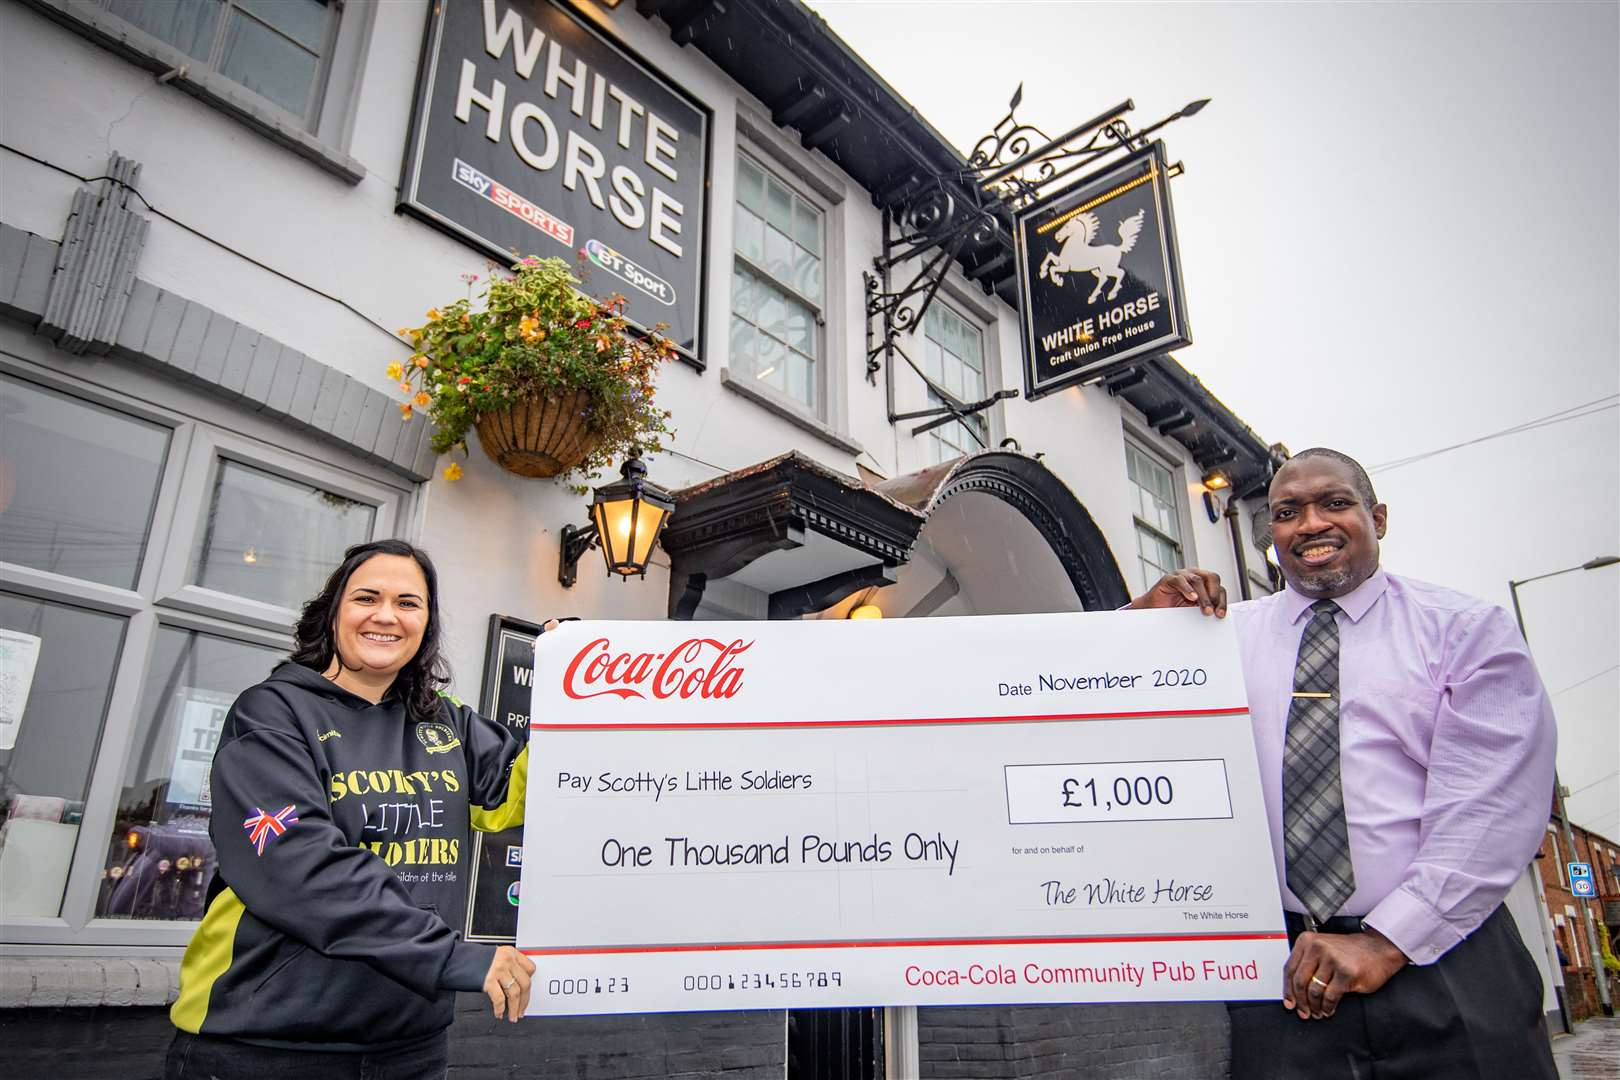 Publican of The White Horse pub Marvin Tillman, 51, and founder of Scotty's Little soldiers Nikki Scott, 39, with the £1k cheque donated to the charity. Picture: SUBMITTED